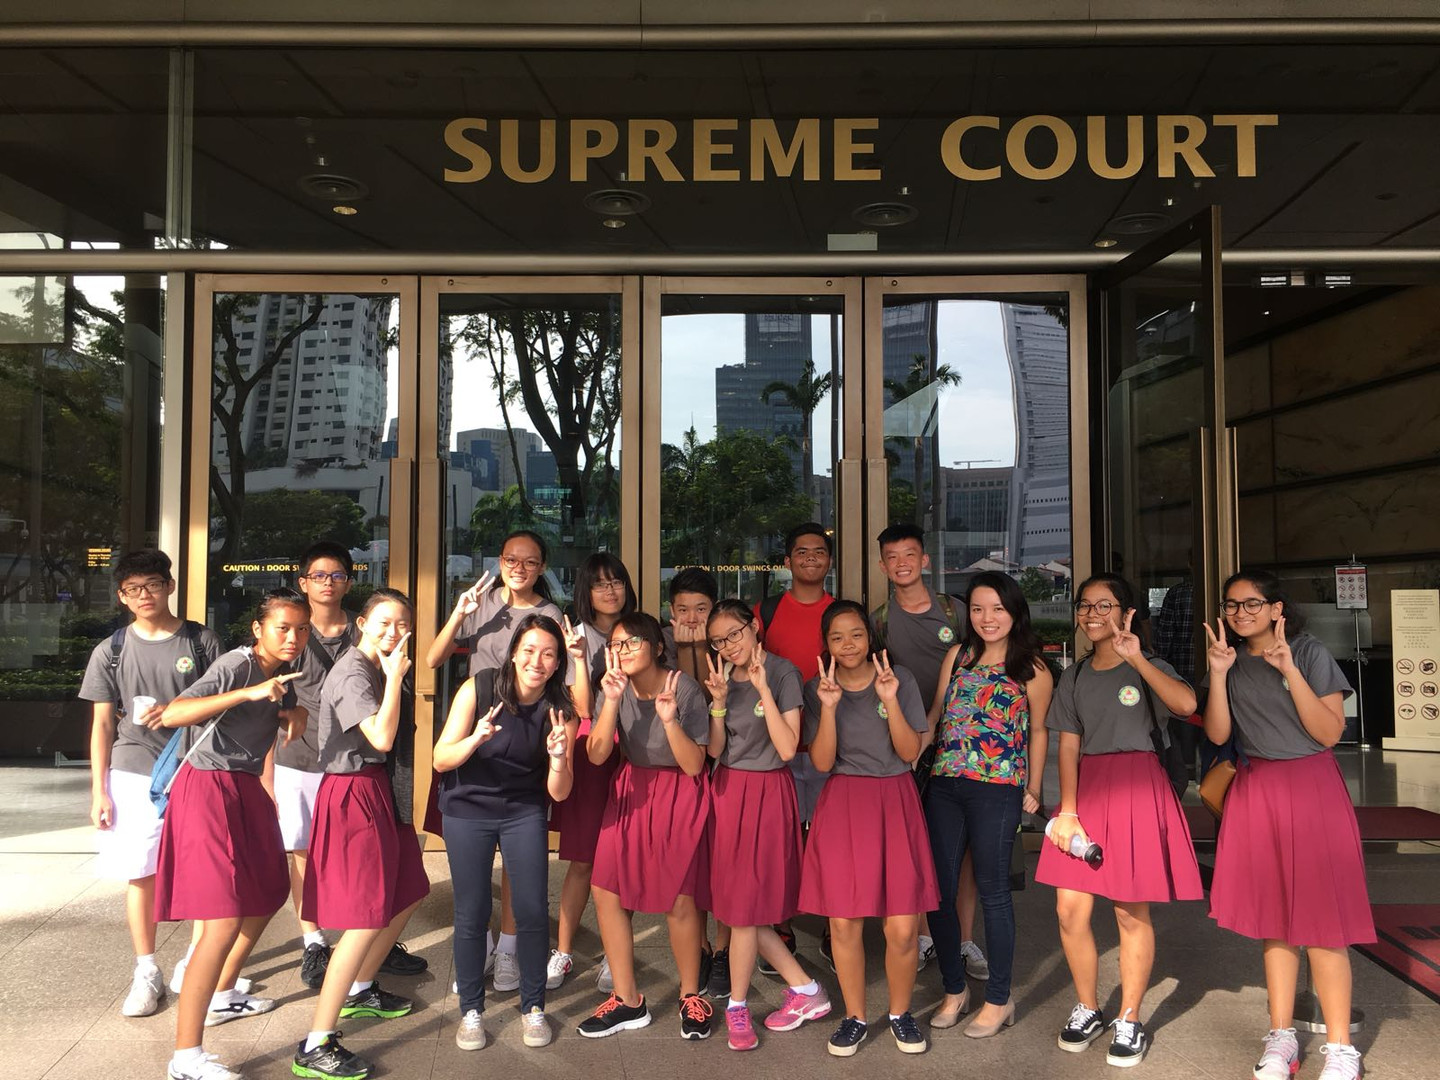 A trip to the Supreme Court!